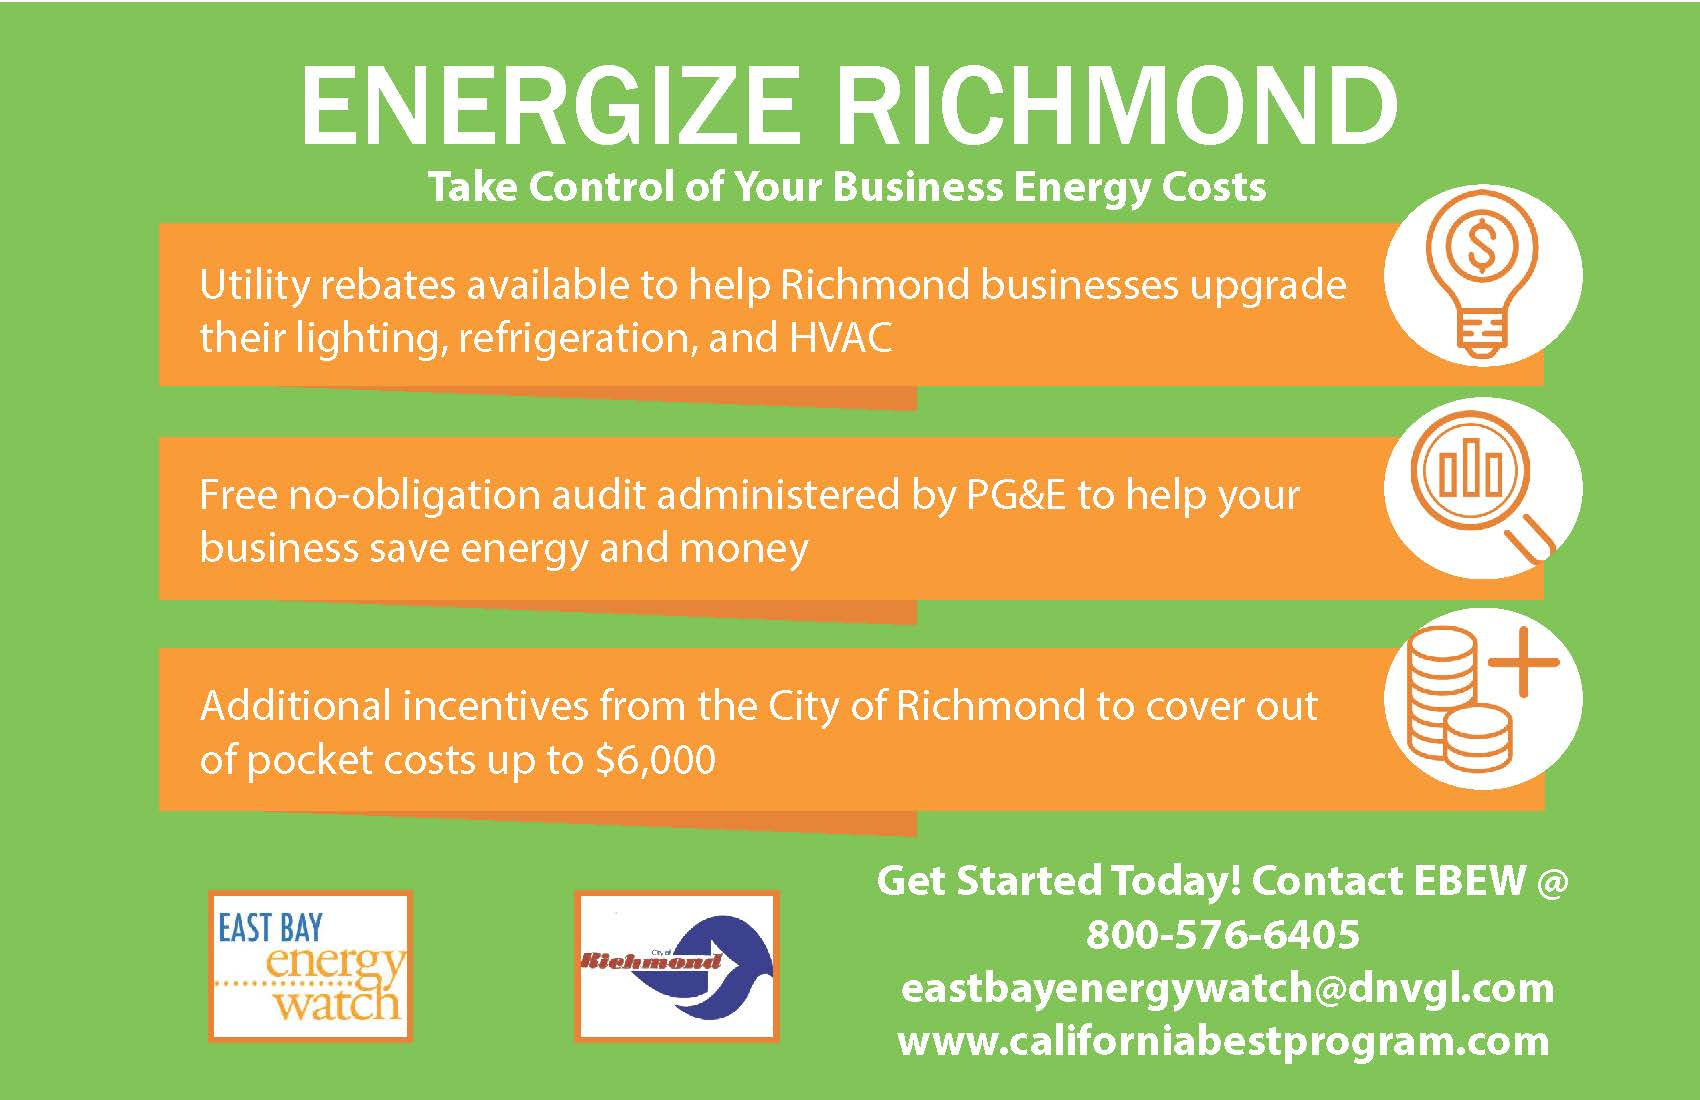 2018 Energize Richmond Small Business Flyer_Page_1